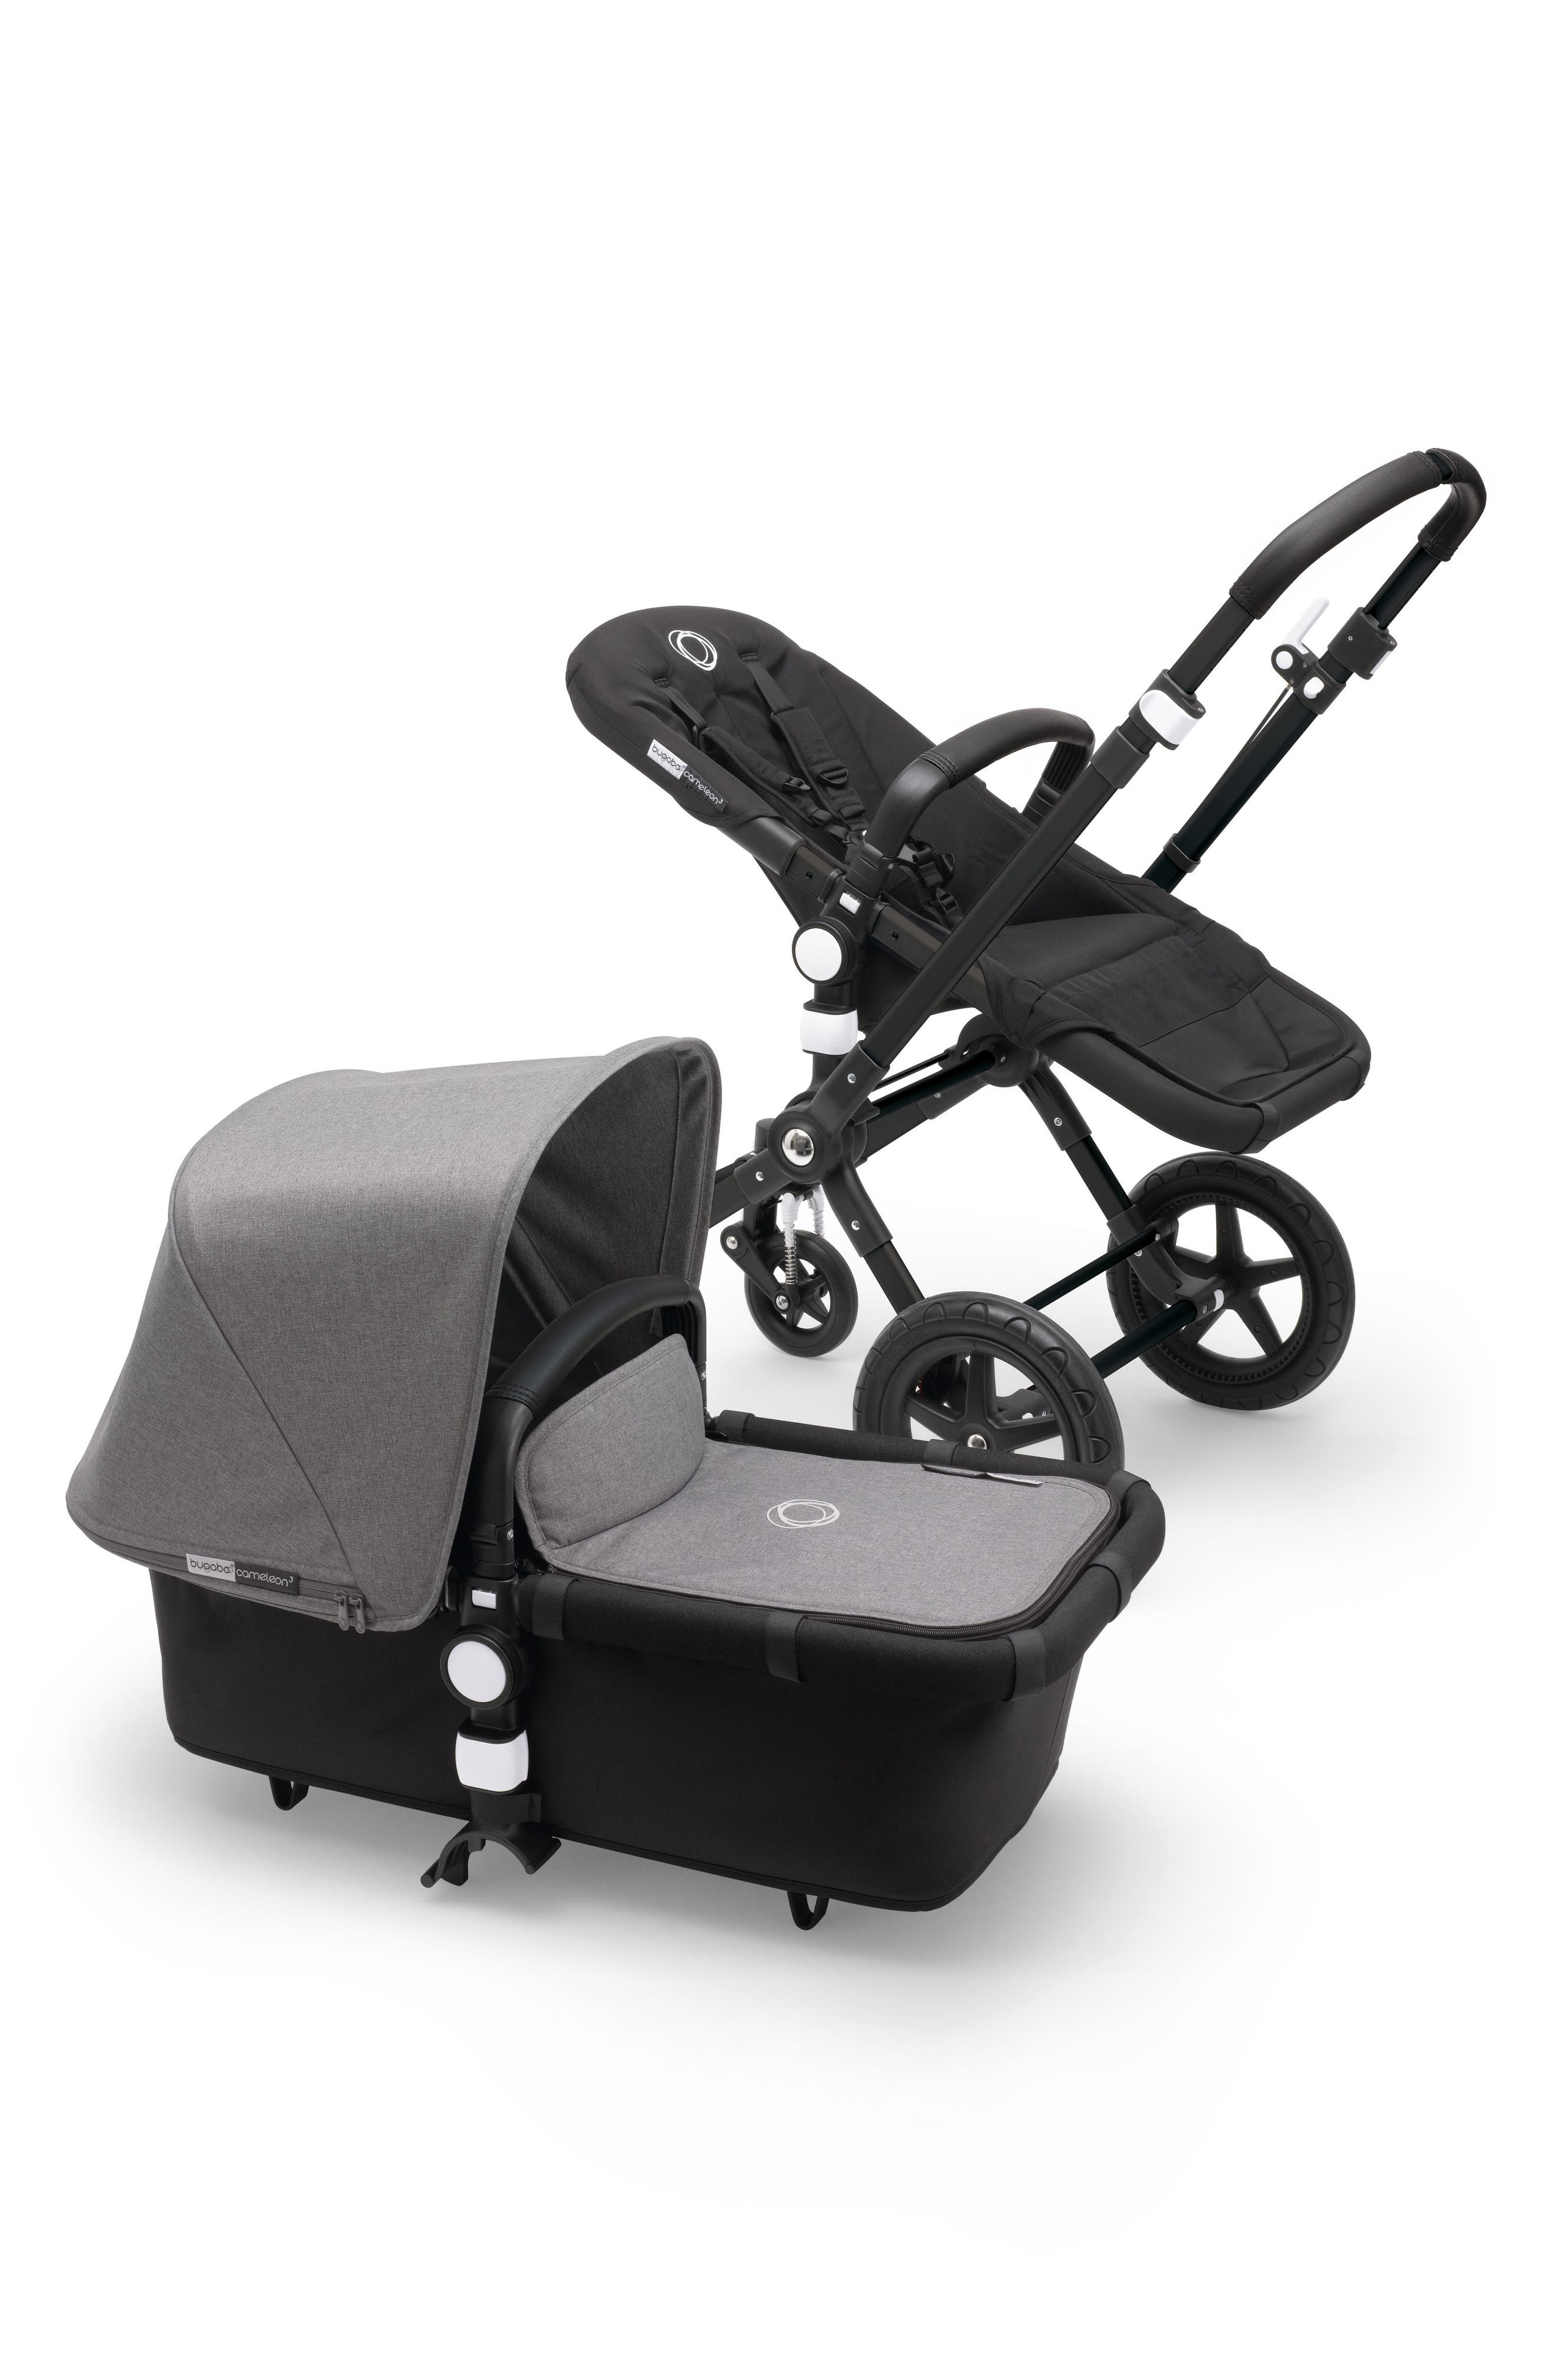 Bugaboo Cameleon³ Complete Stroller with Fabric Set